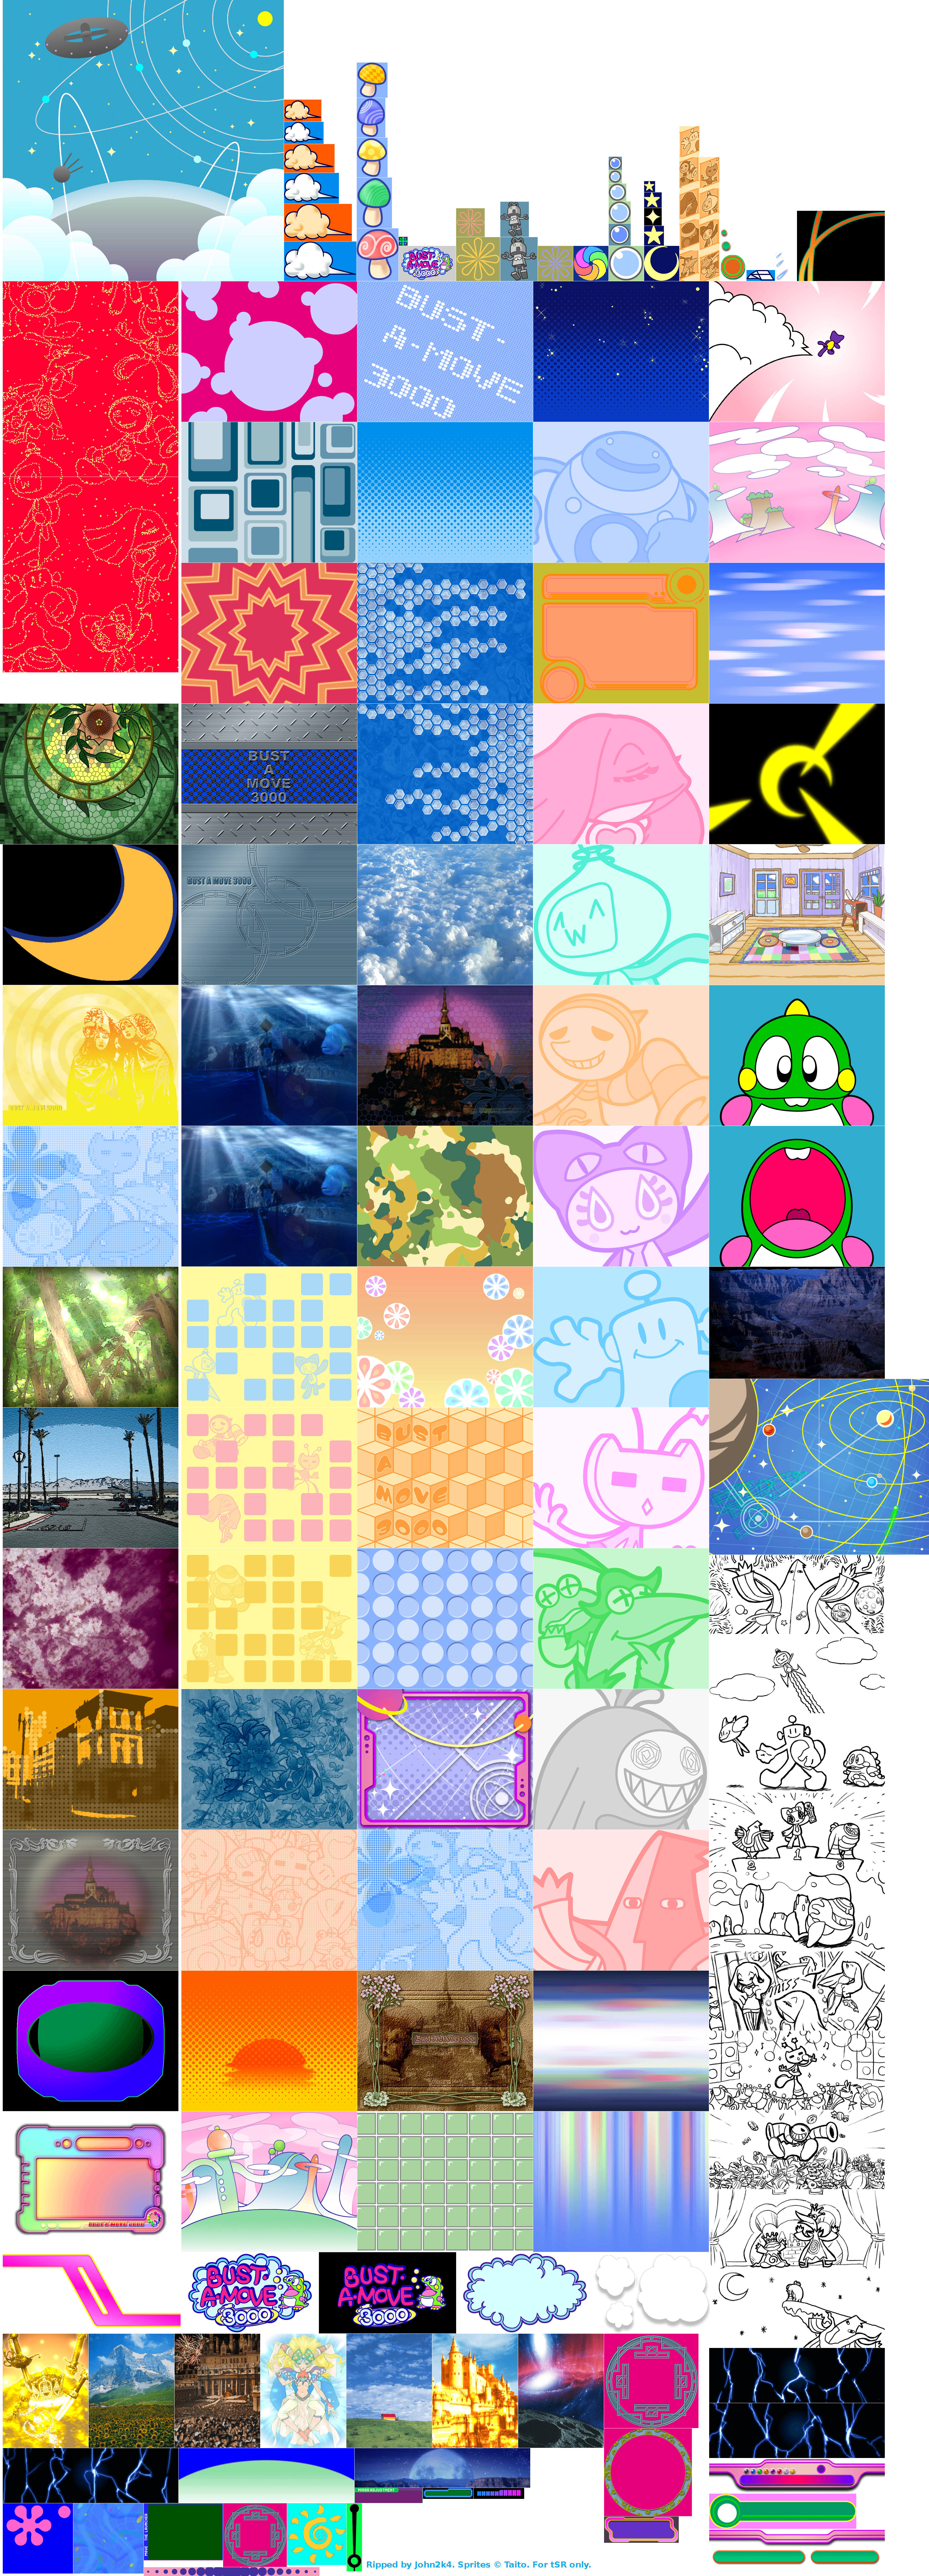 The Spriters Resource Full Sheet View Bust A Move 3000 Super Puzzle Bobble All Stars